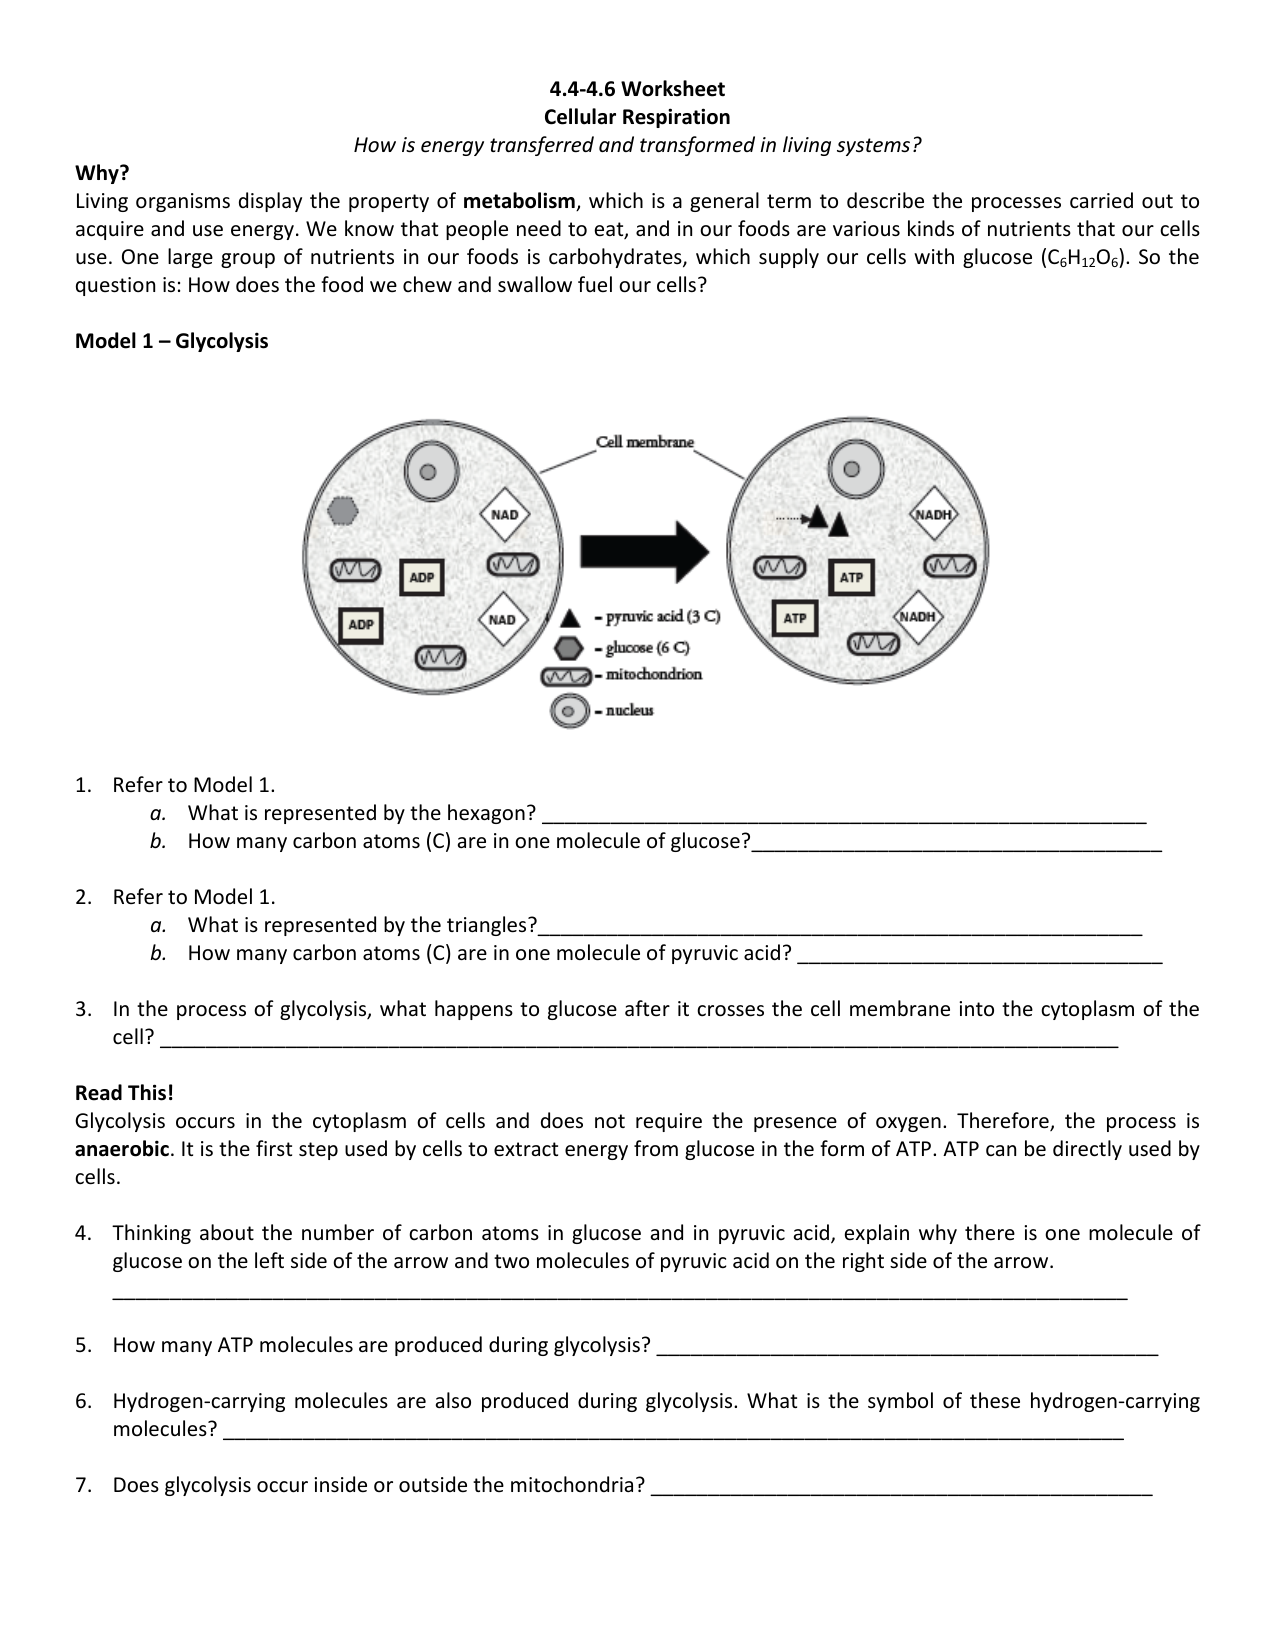 4.4-4.6 Worksheet Cellular Respiration How is energy transferred